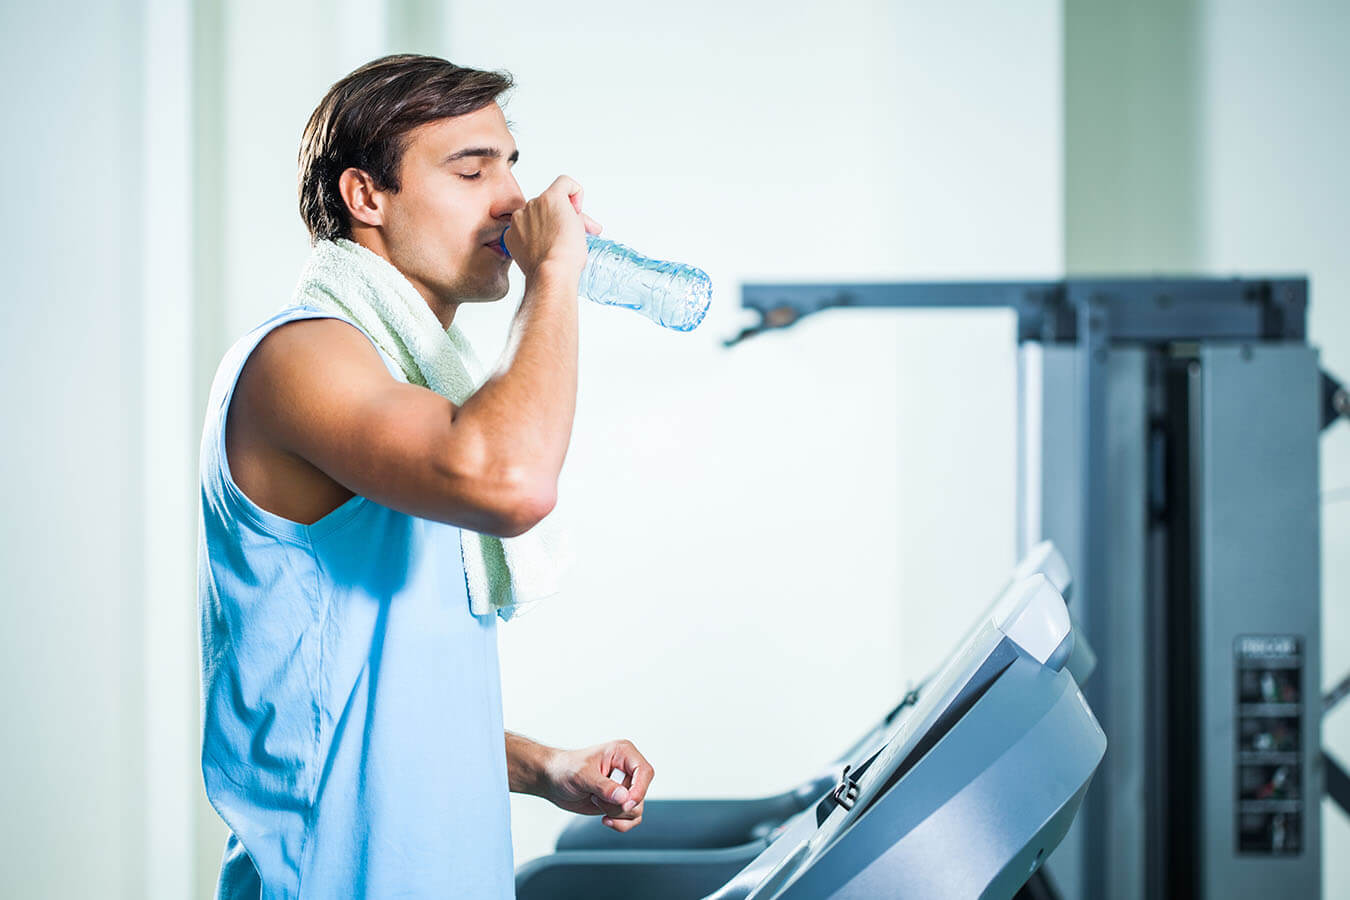 Man drinking water while exercising in gym shapezine digital man drinking water while exercising in gym sciox Choice Image